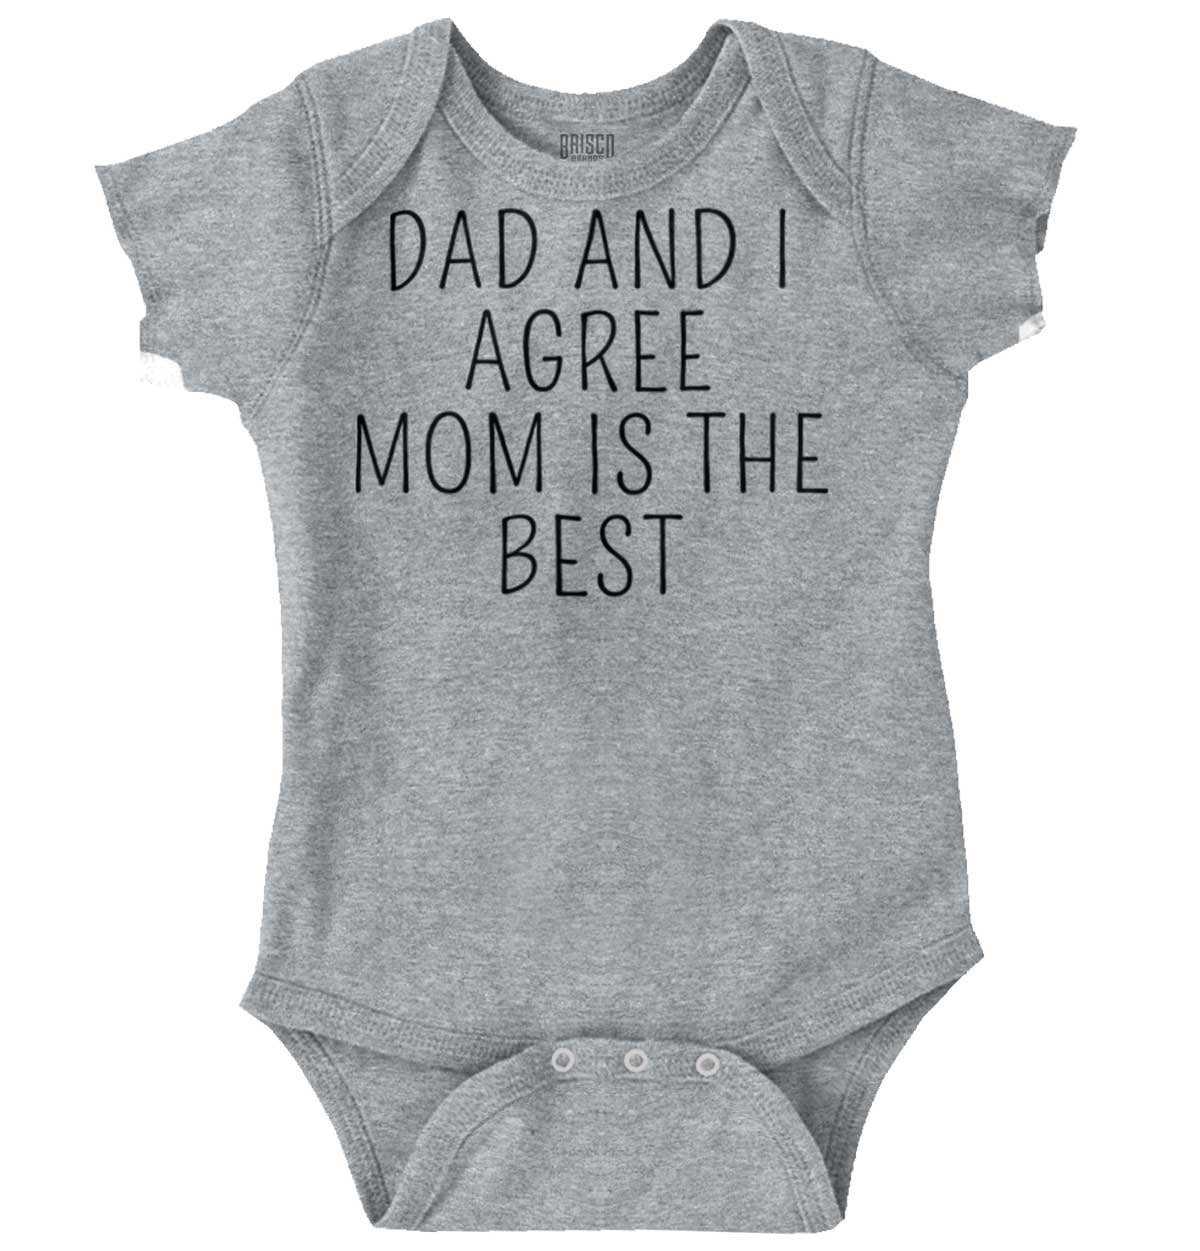 Brisco Brands Proof Daddy Video Games All The Time Funny Romper Bodysuit